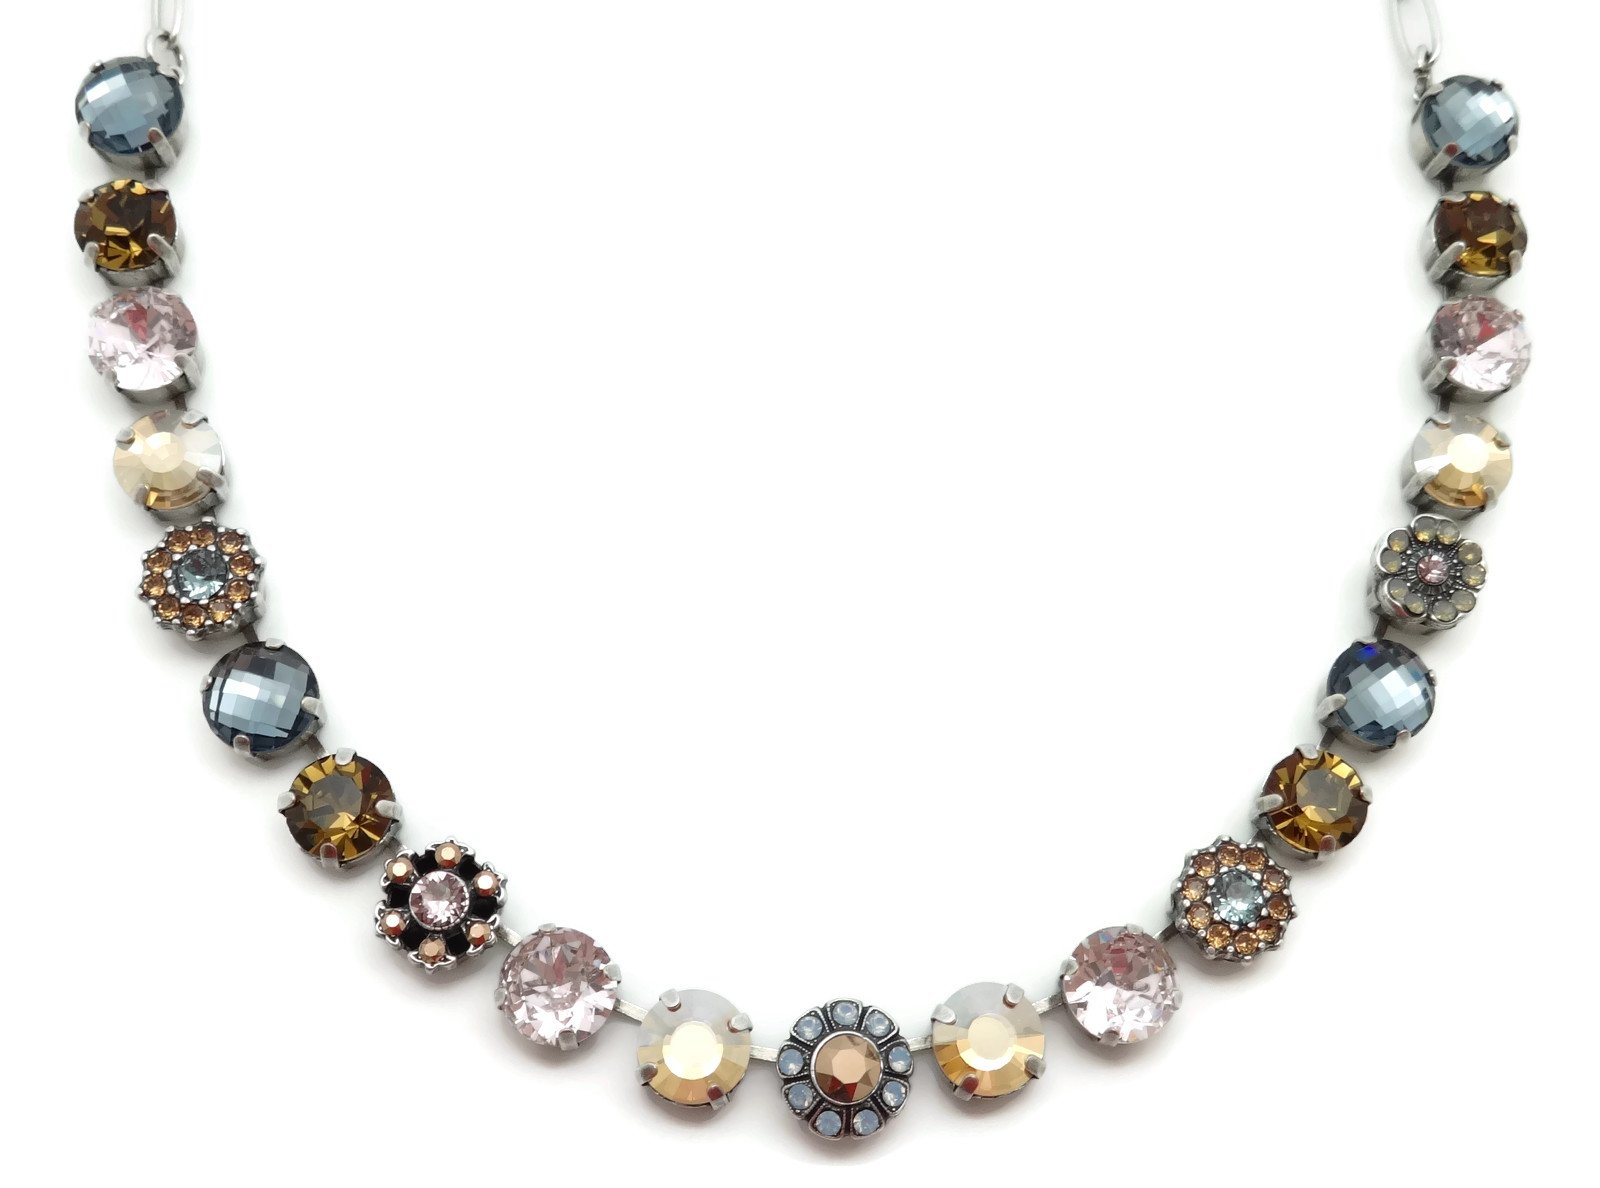 Mariana Silver Plated Swarovski Crystal Necklace Brown Pink Mix 1092 Odyssey Rhapsode